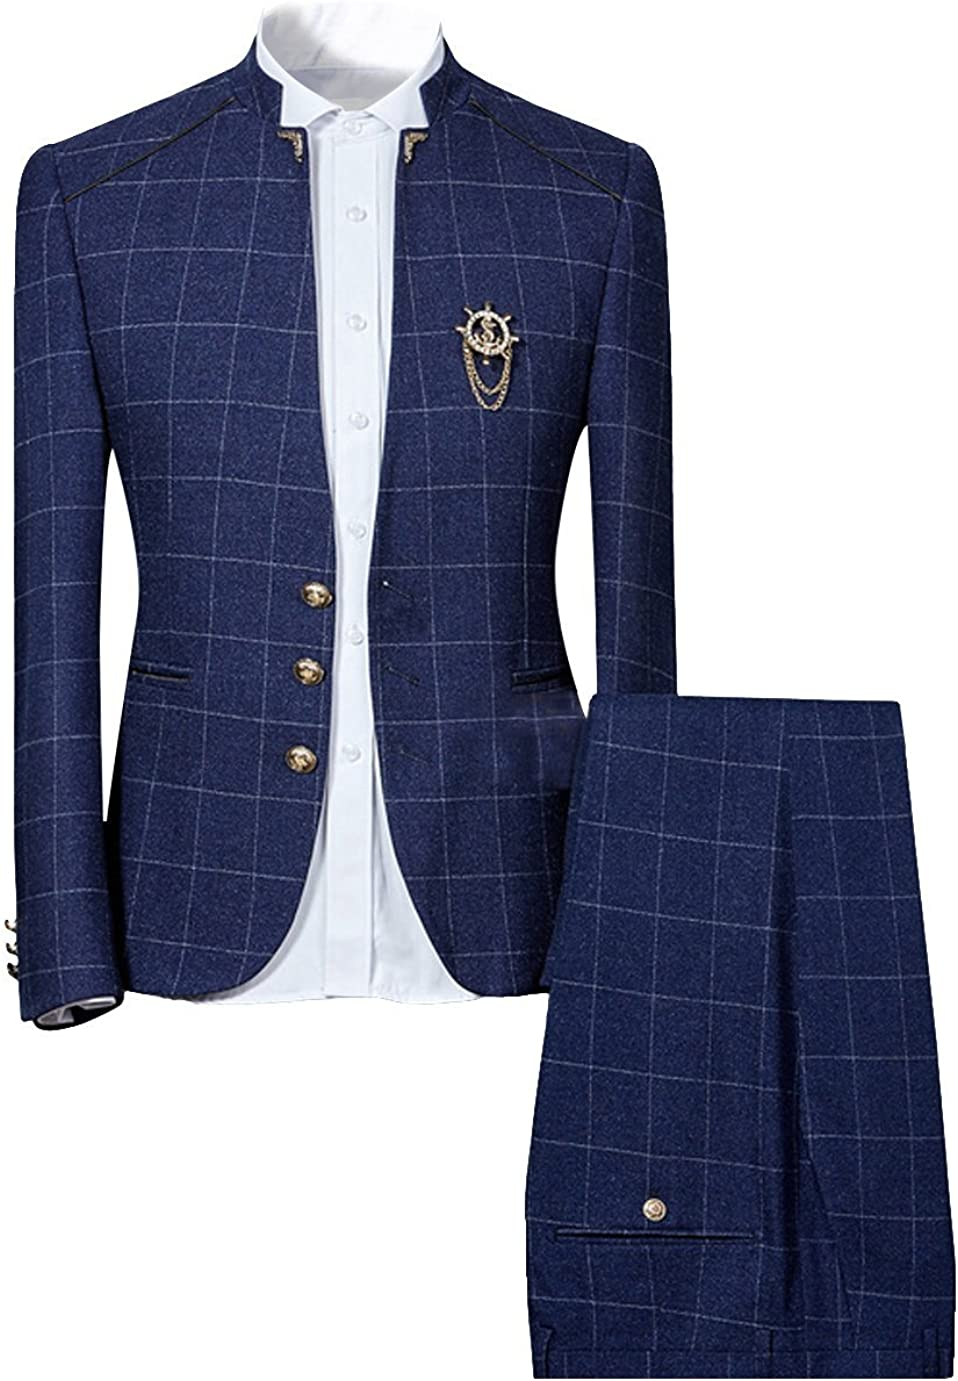 Mens Plaid Slim Fit Checked Suits 2 Piece Vintage Jacket and Trousers